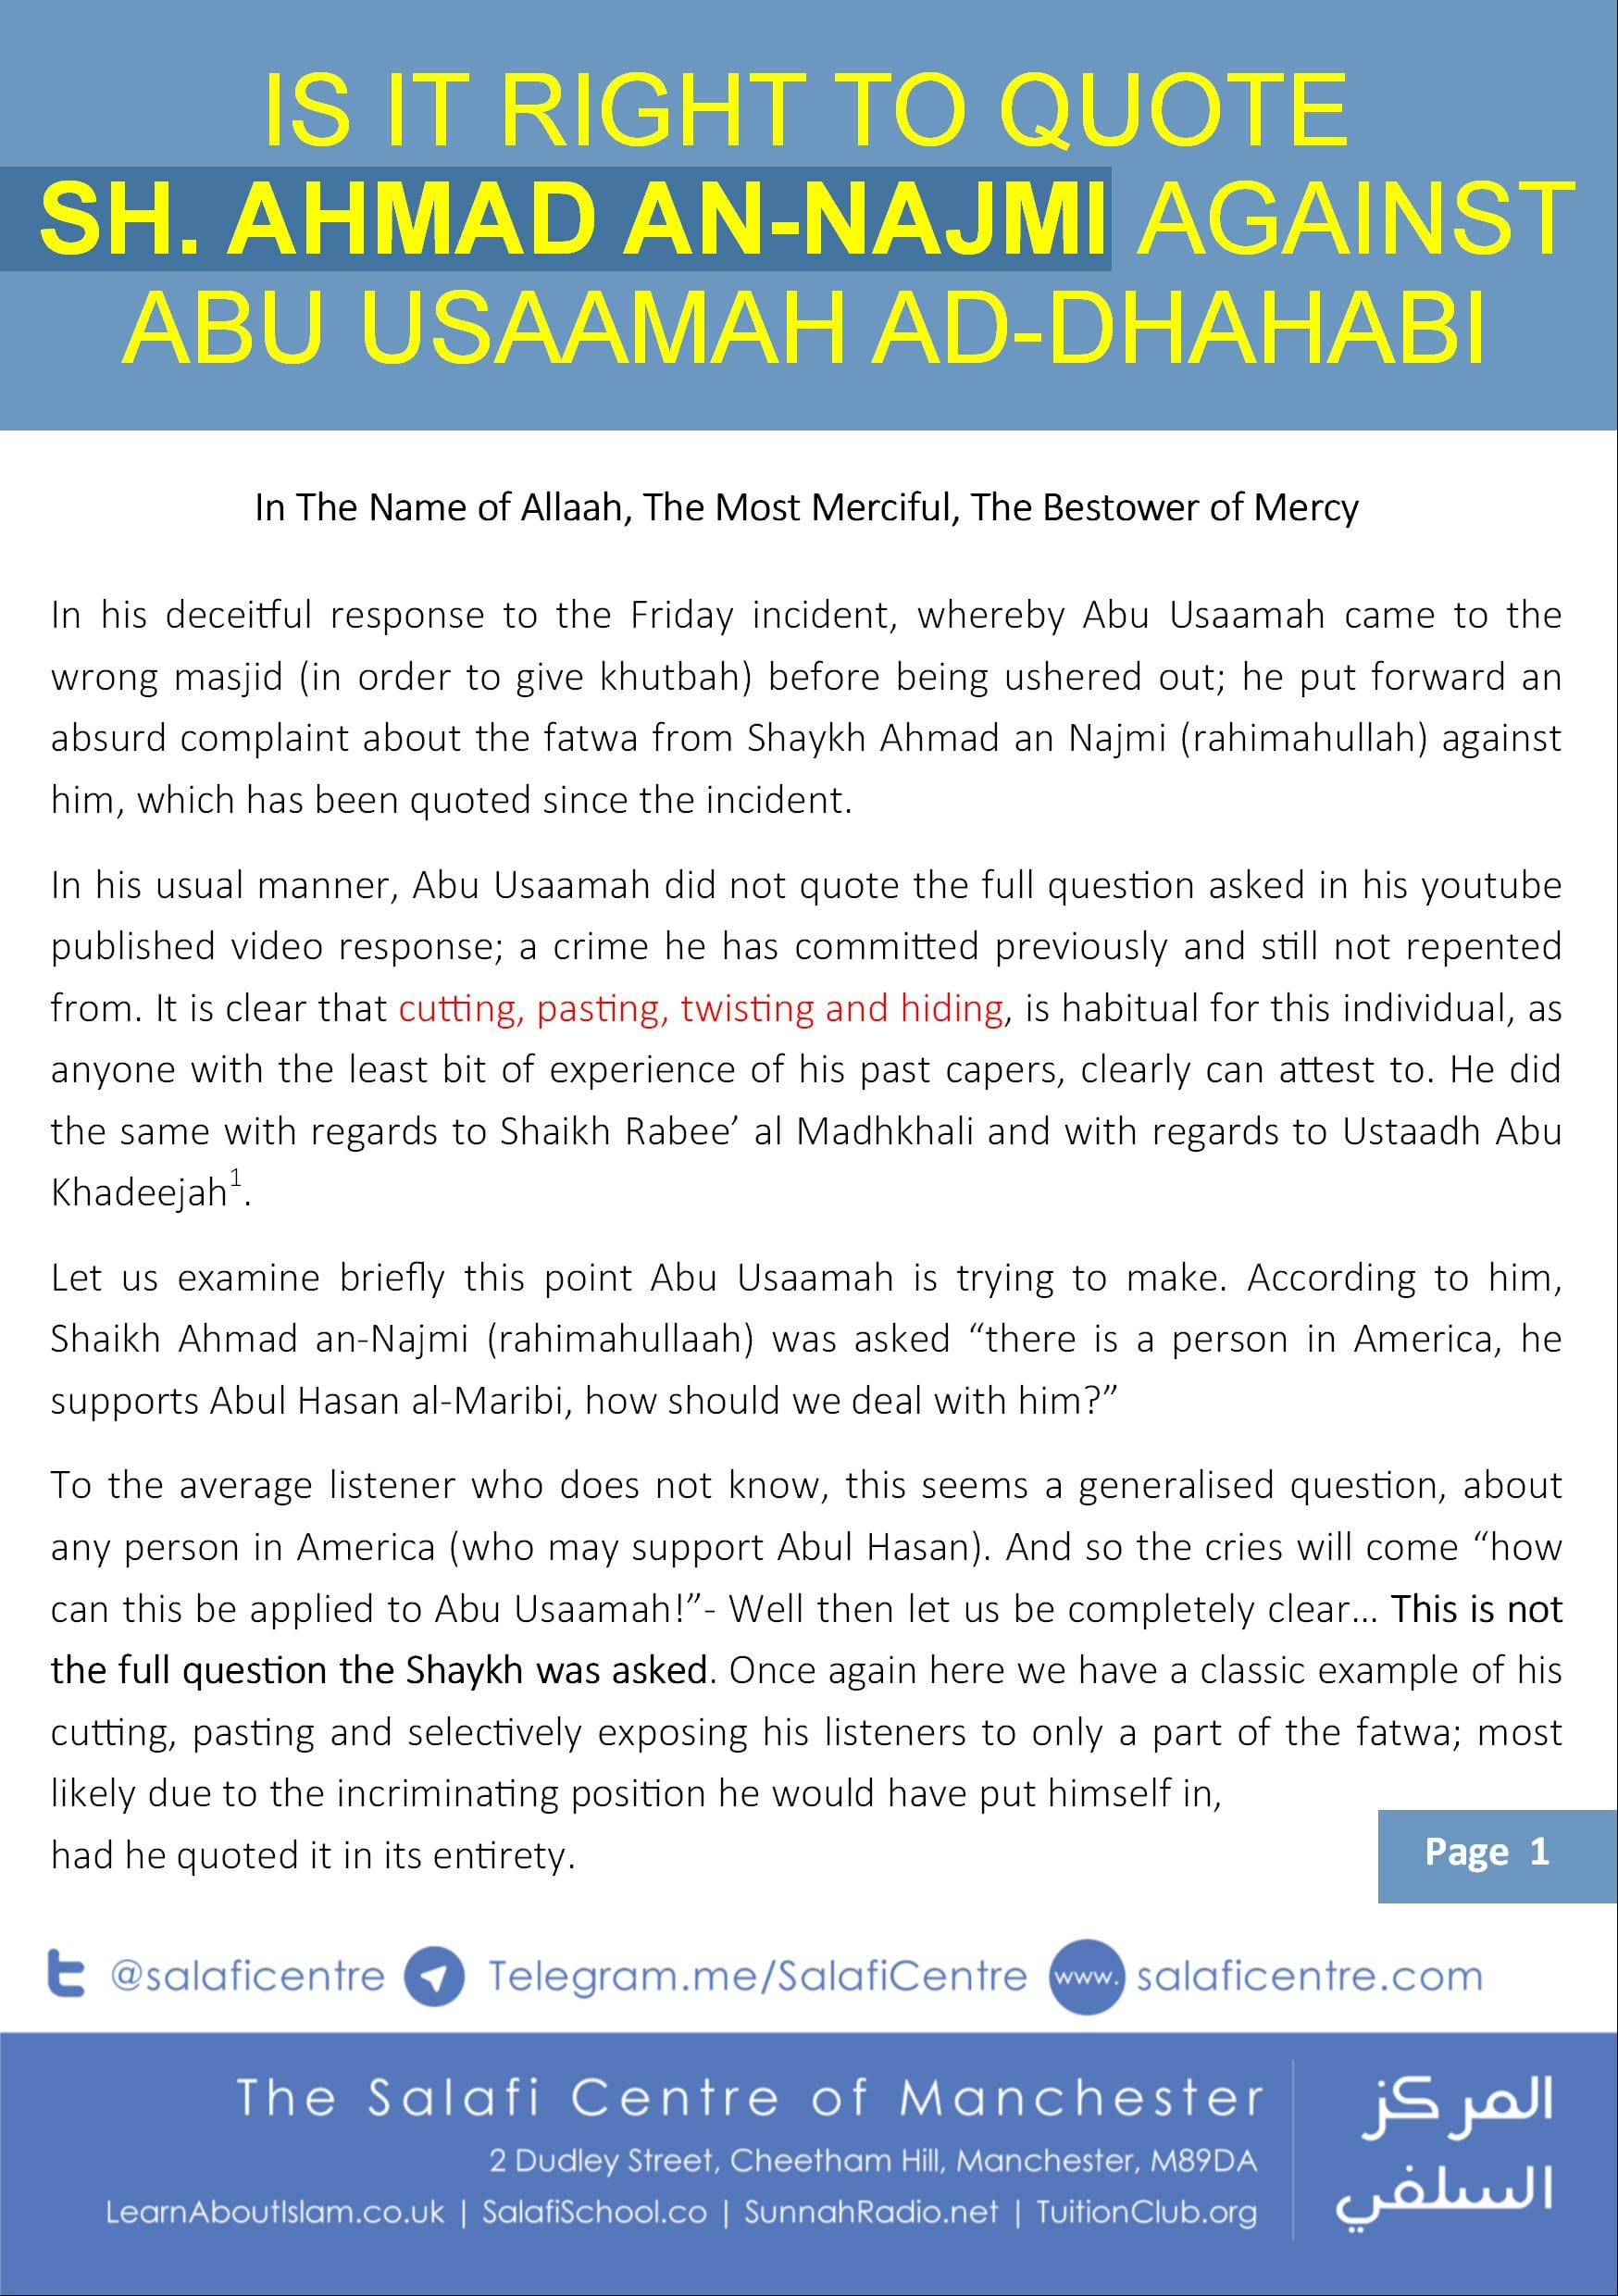 What Really was said by Shaykh Ahmad Najmi about Abu Usaamah Dhahabi